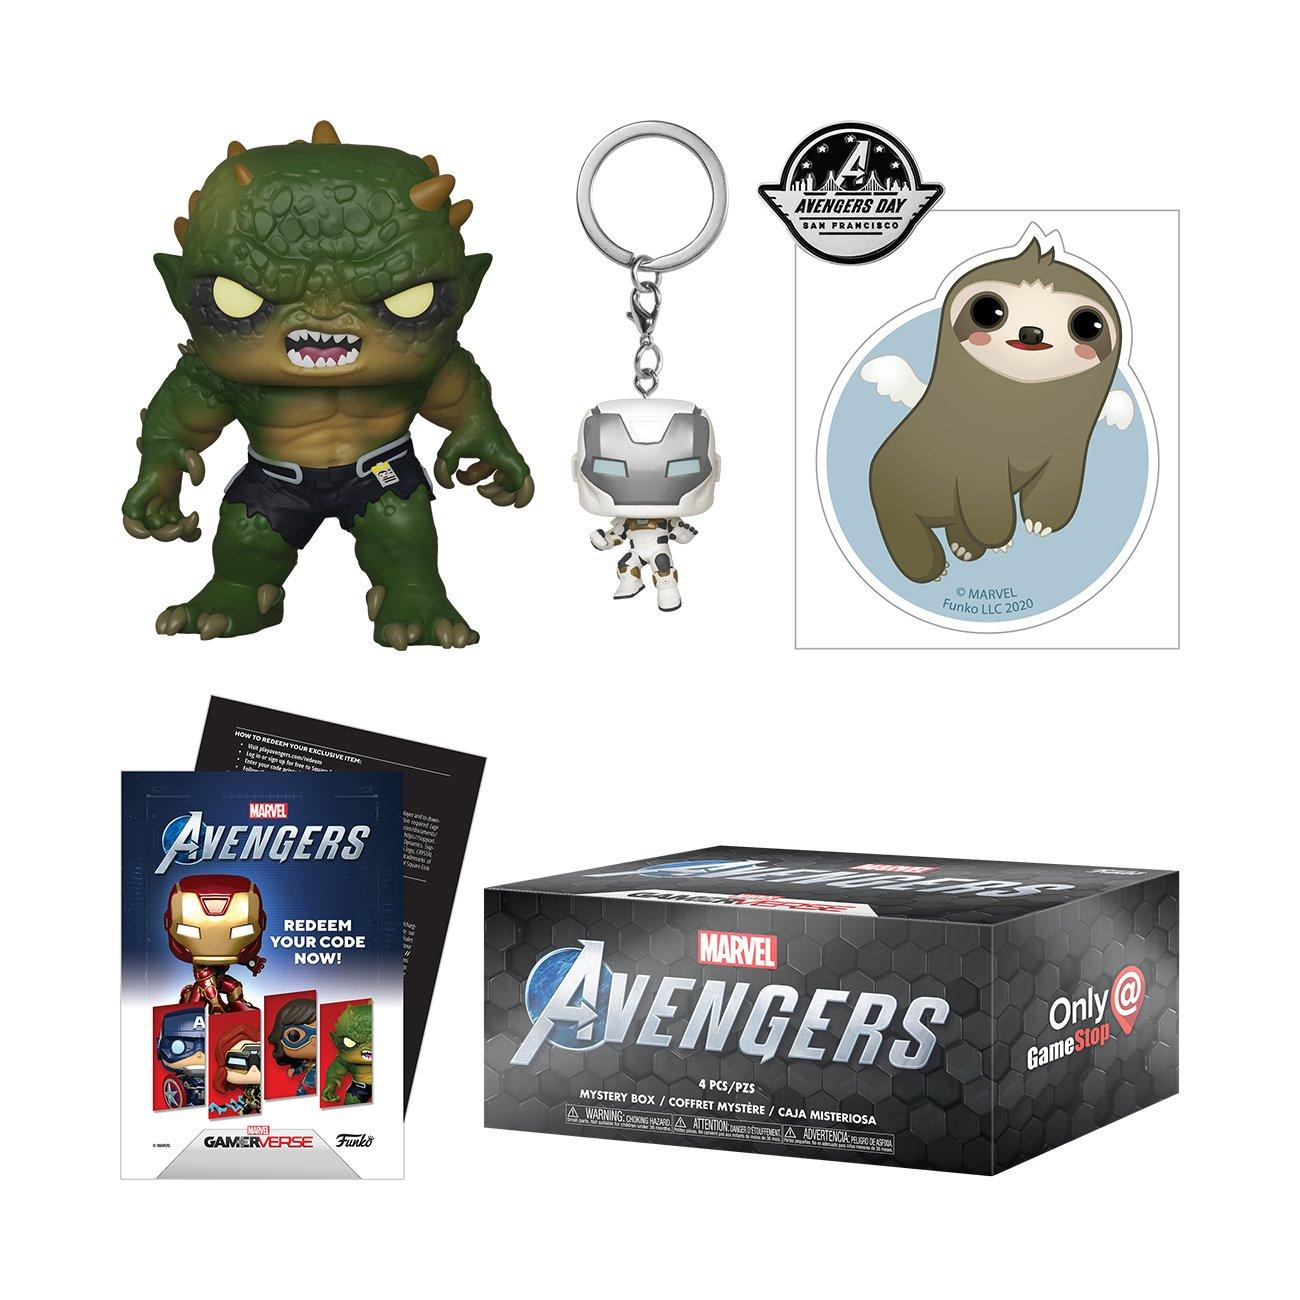 Anime Theme Mystery Box Contains Funko Pop Action Figures /& Collectibles